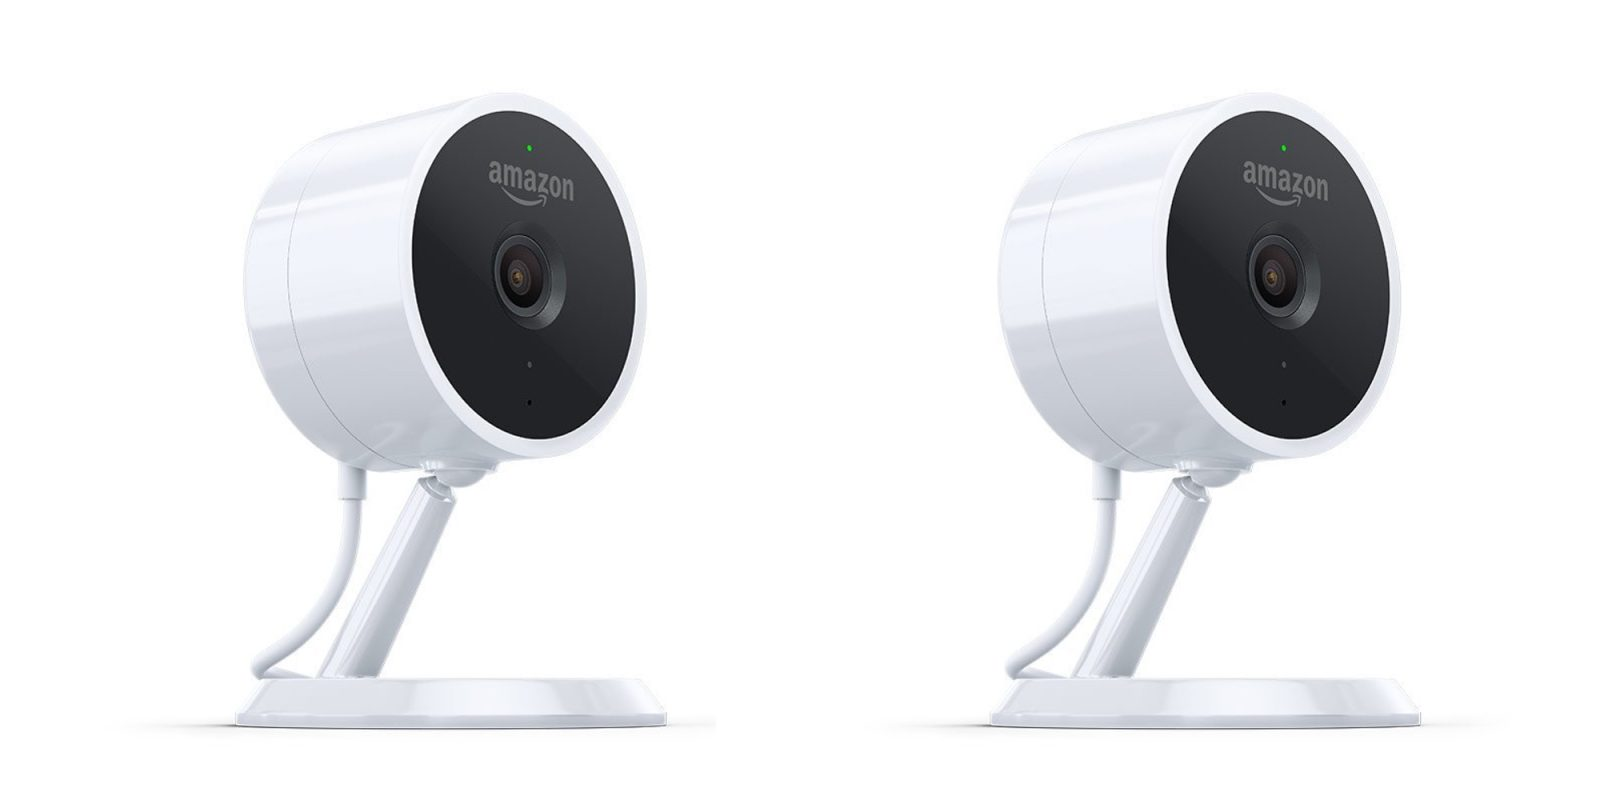 Amazon Cloud Cam delivers 1080p feeds, Alexa features, more: $90 (Reg. $120)